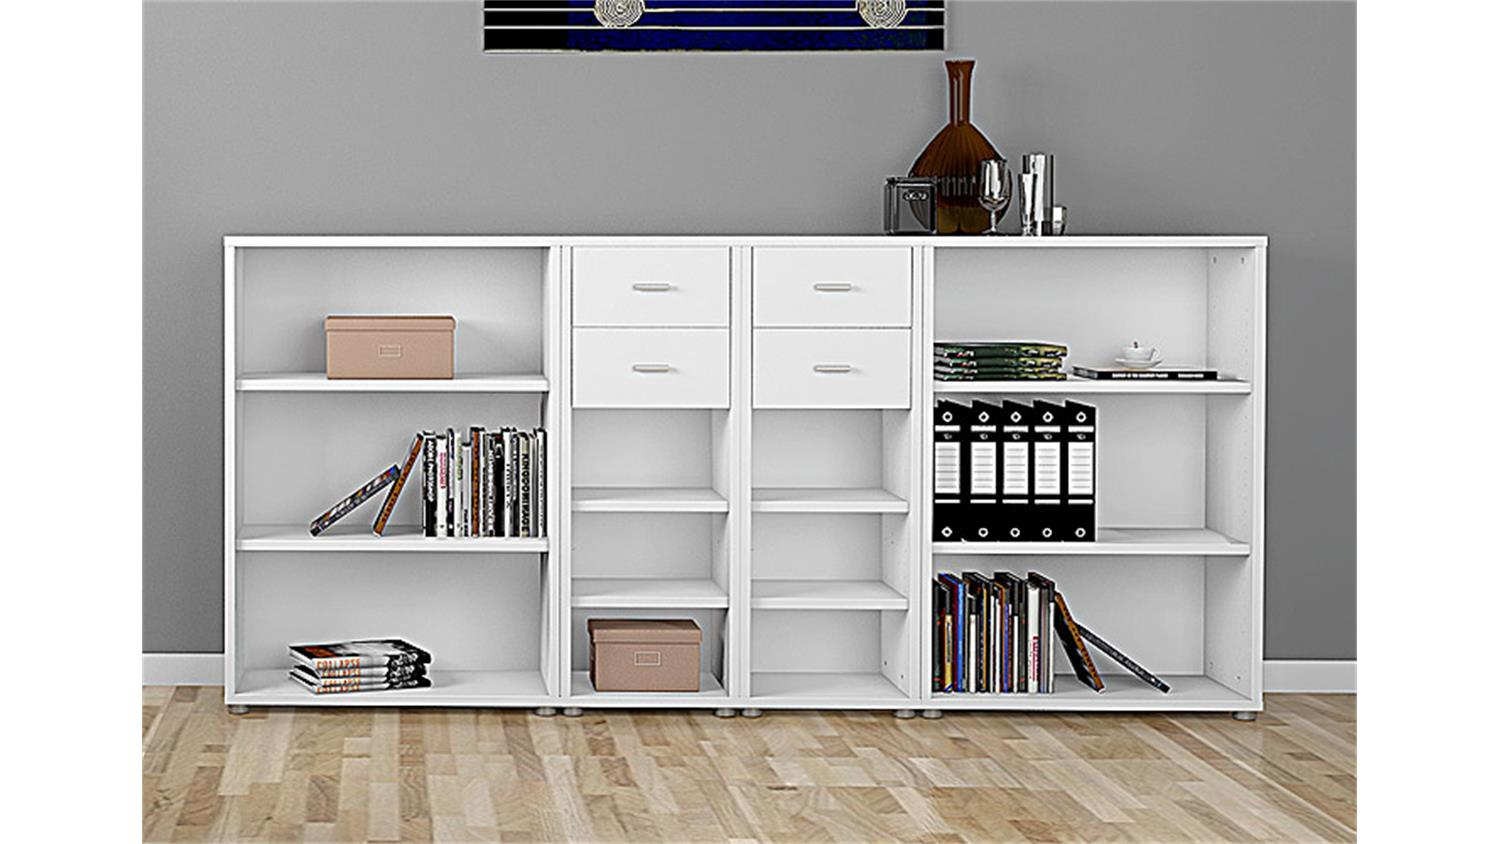 regalkombi 2 bocca b cherregal regal sideboard in wei. Black Bedroom Furniture Sets. Home Design Ideas